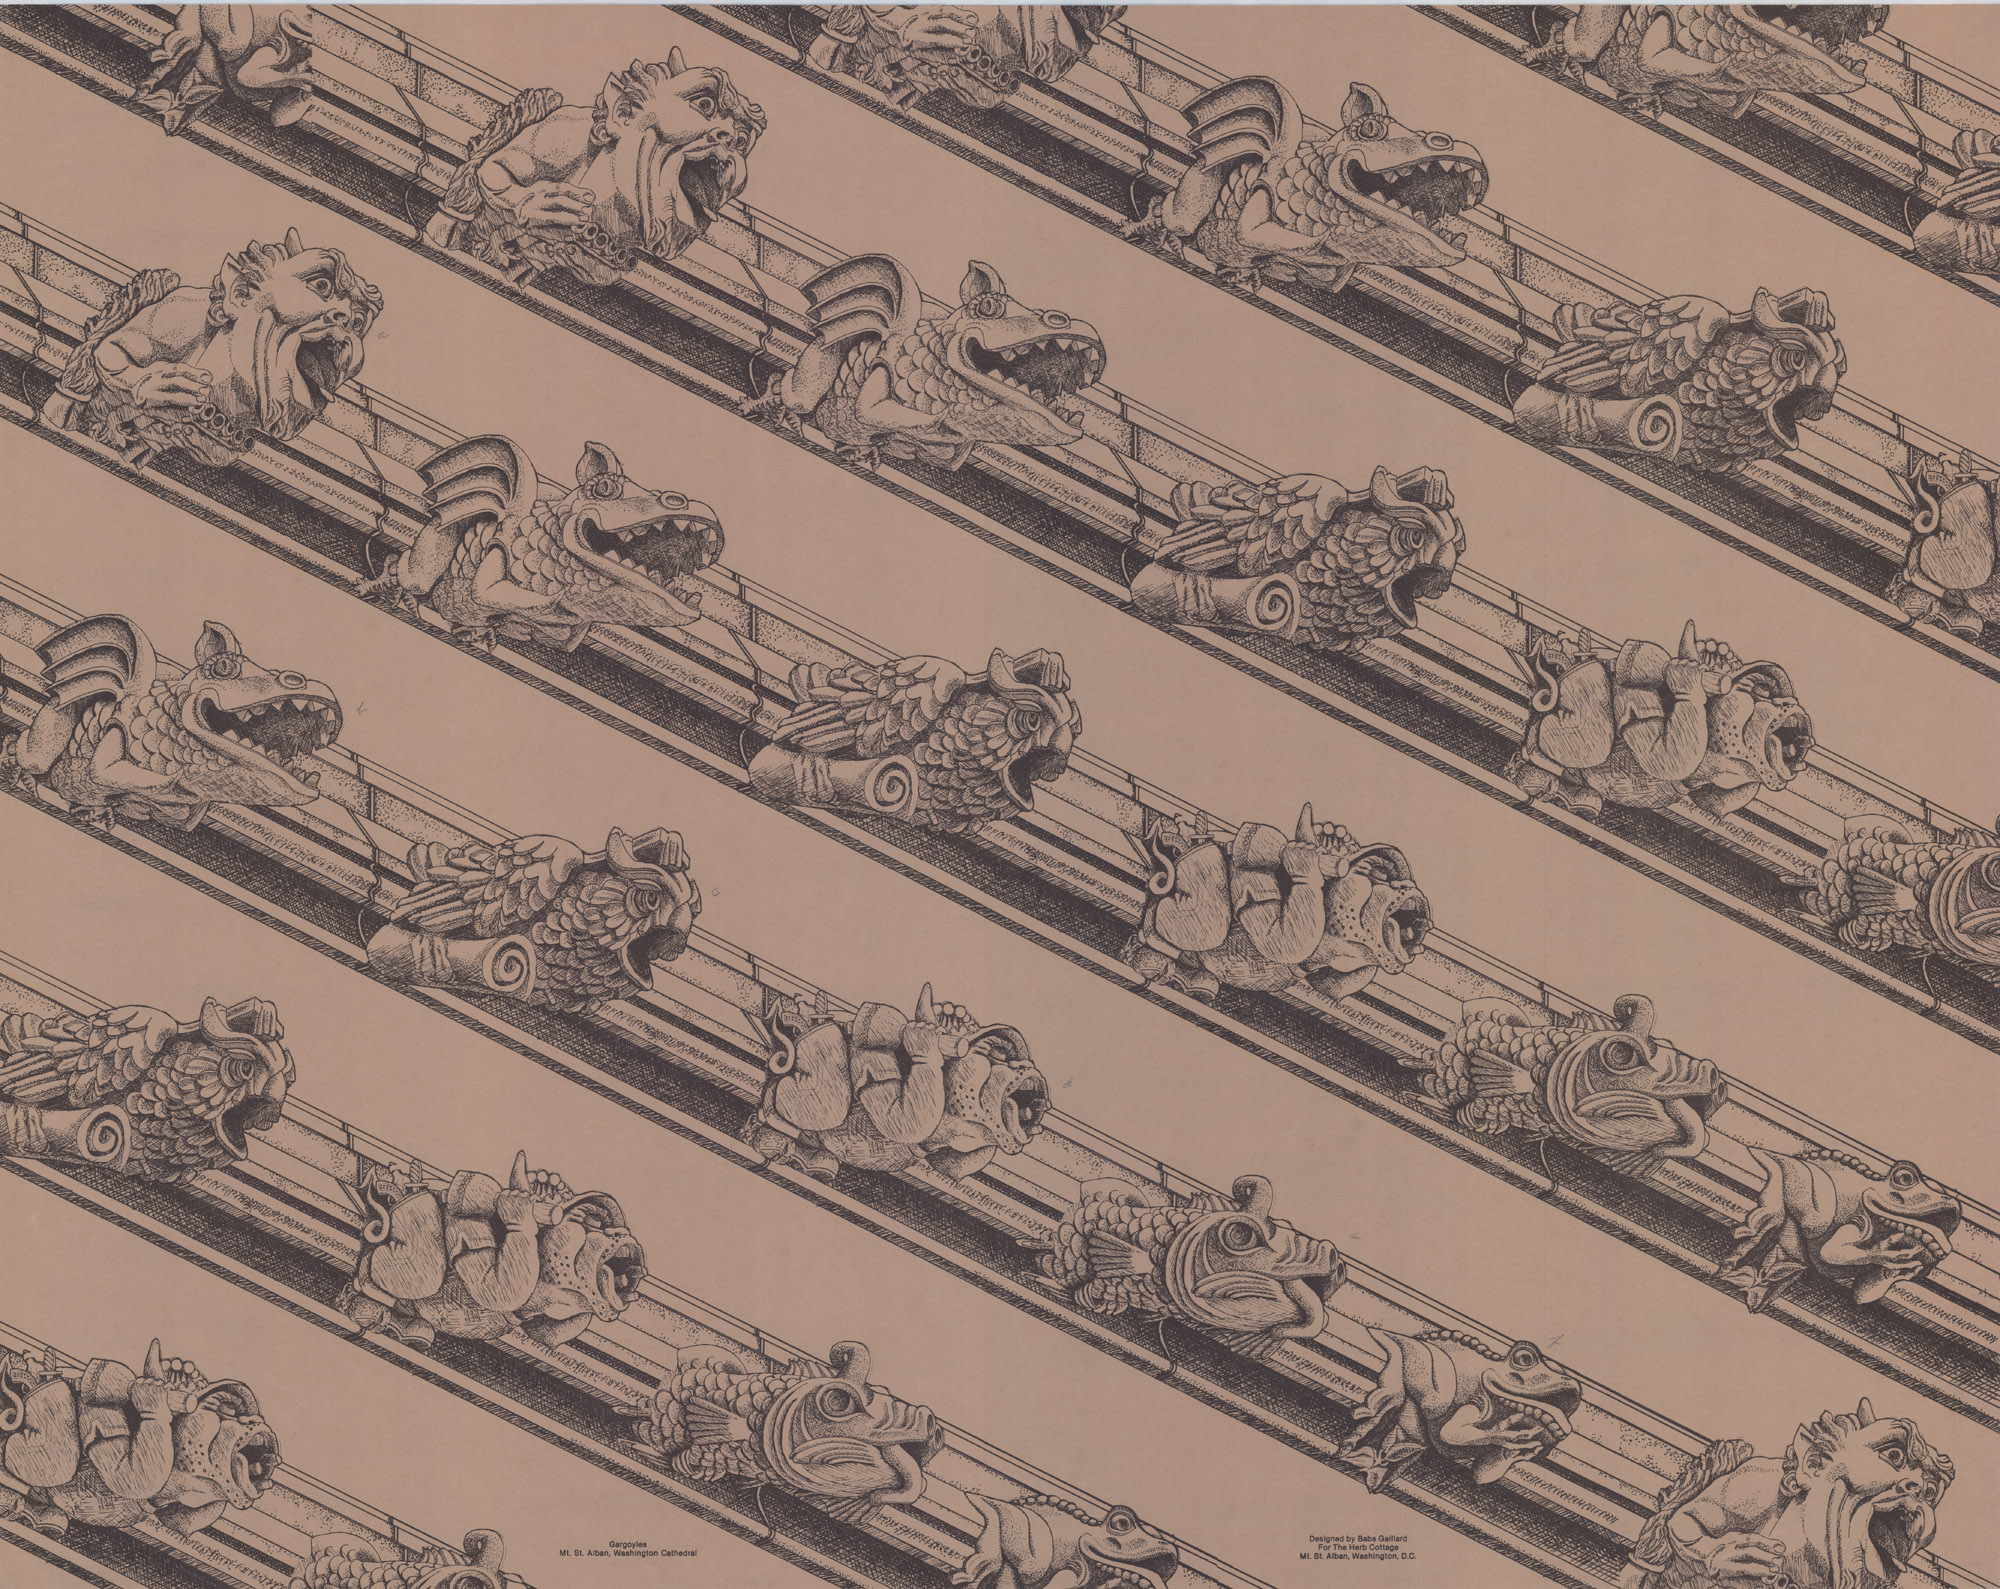 Gargoyle wrapping paper sample, designed for Herb Cottage by Babs Gaillard. Courtesy Washington National Cathedral Construction Archives Collection.